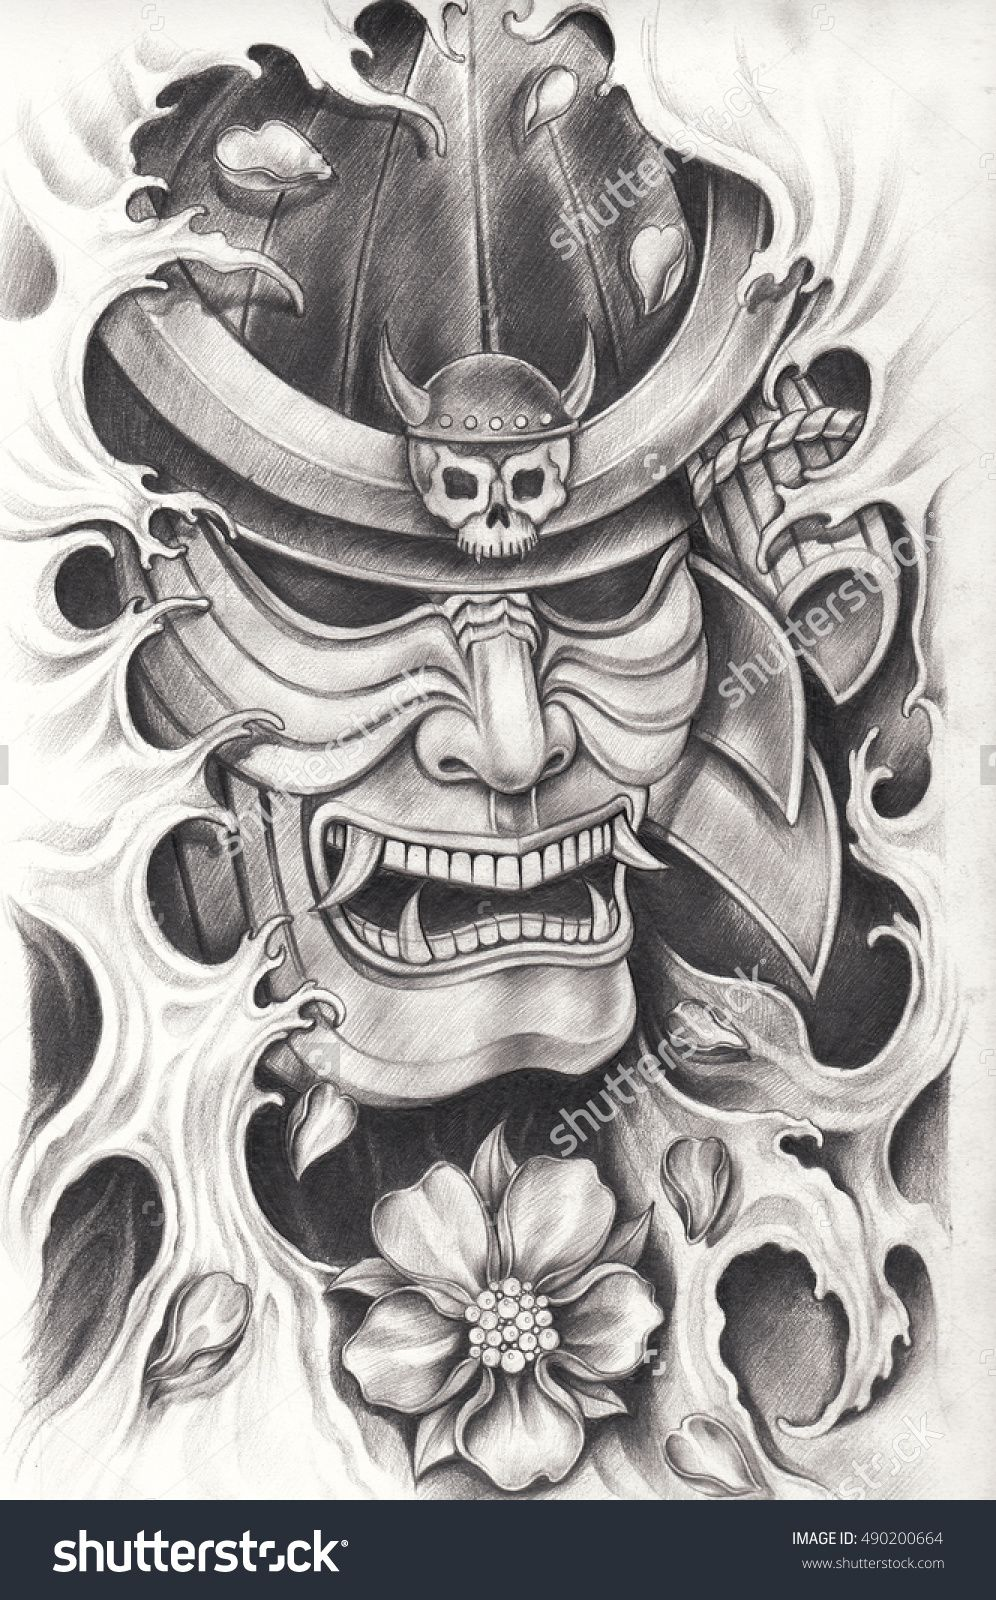 samurai warrior tattoo design hand pencil drawing on paper. Black Bedroom Furniture Sets. Home Design Ideas